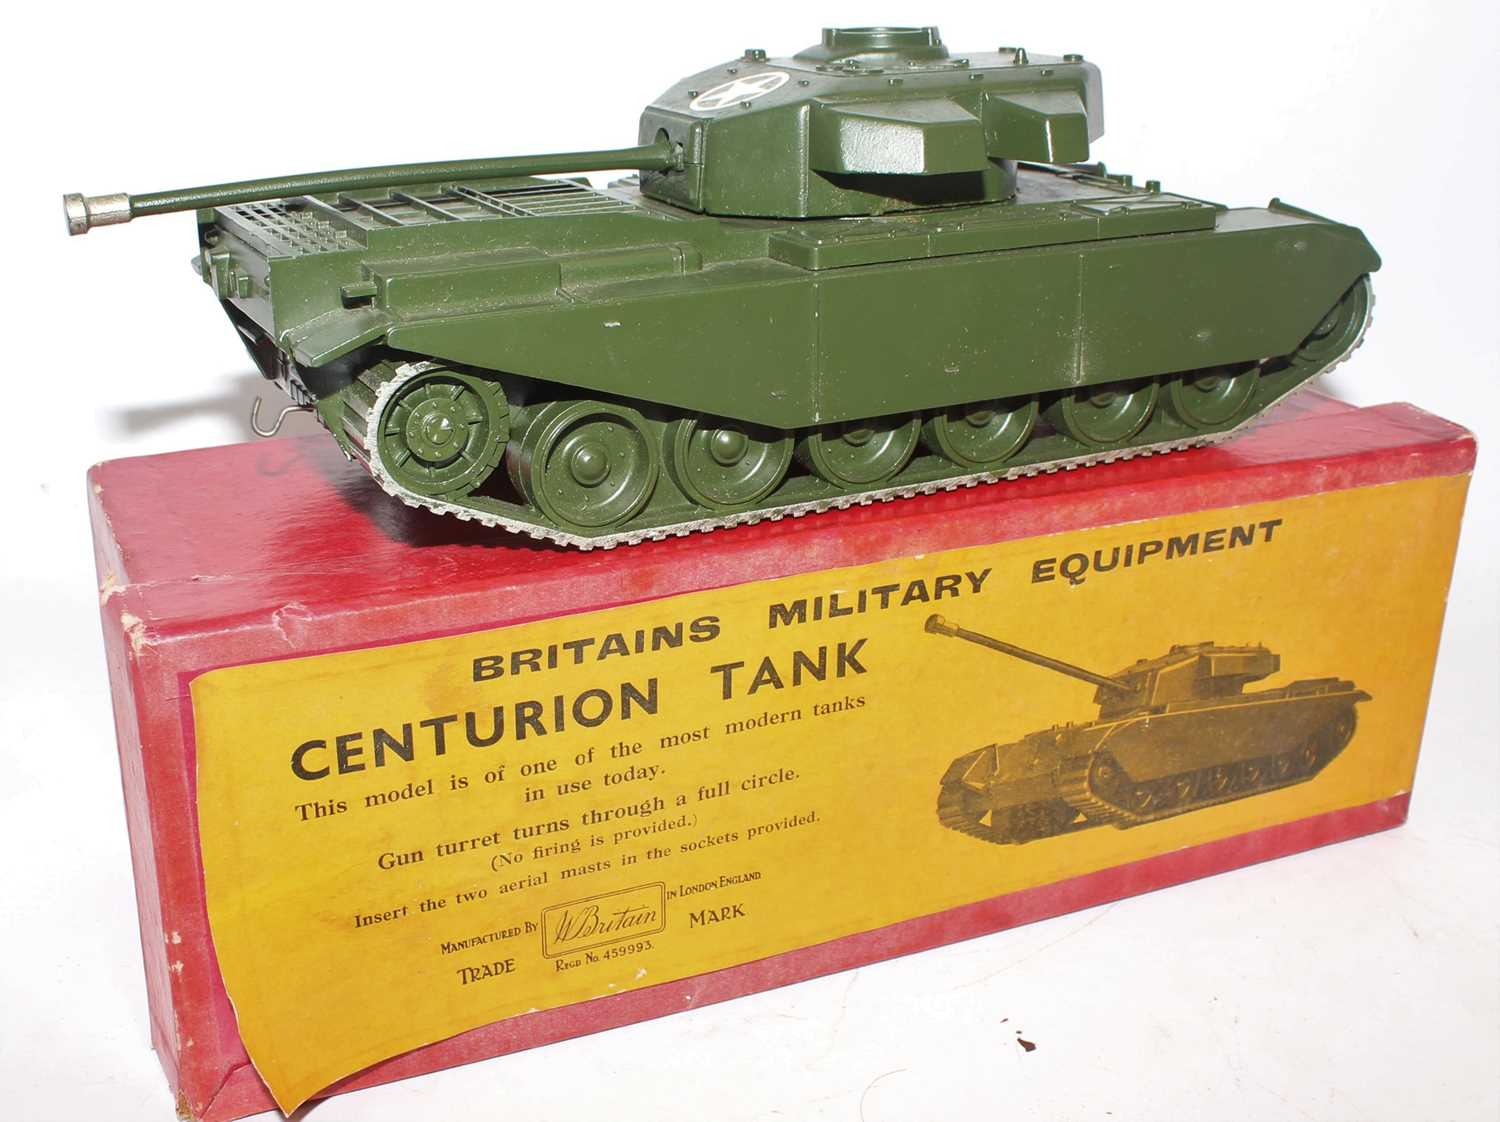 A Britains set No. 2150 Centurion tank comprising of military gloss green body with silver tracks,